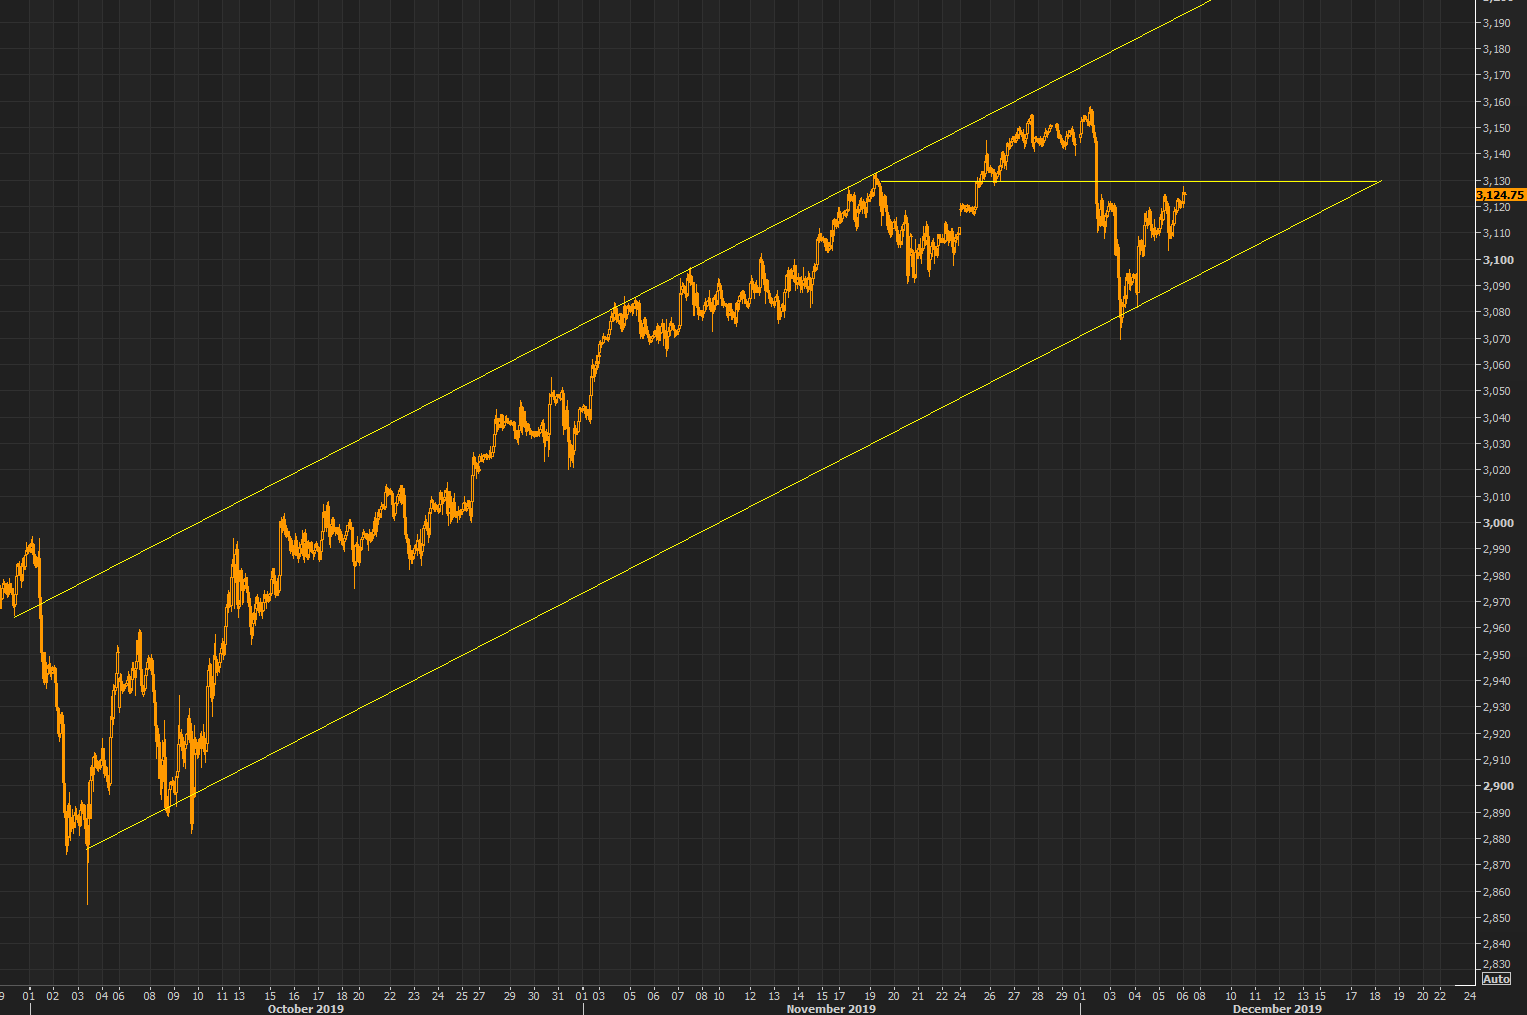 S&P - trend channel since October lows intact, resistance 3130/3140, support 3110/3100